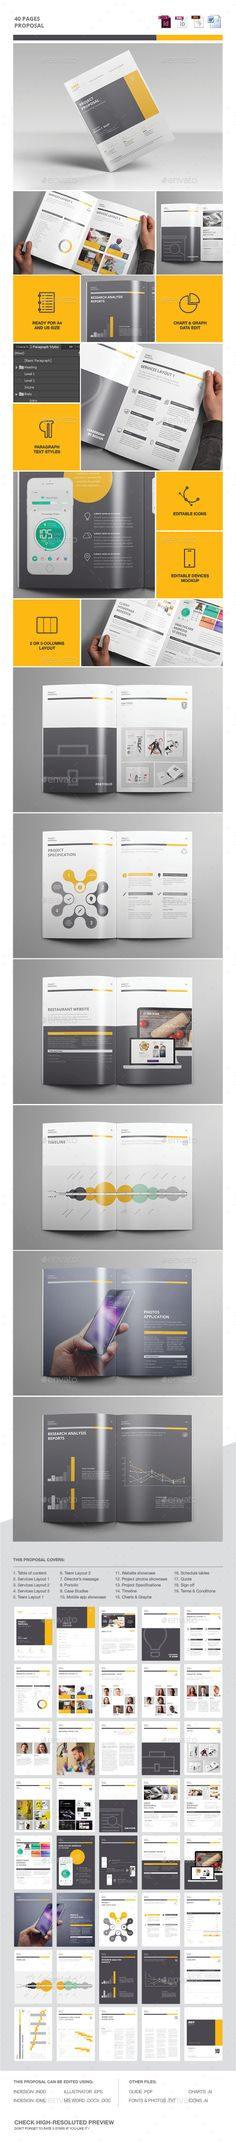 Proposal 40 Pages Template EPS, InDesign INDD #design Download: http://graphicriver.net/item/proposal-template/13138507?ref=ksioks